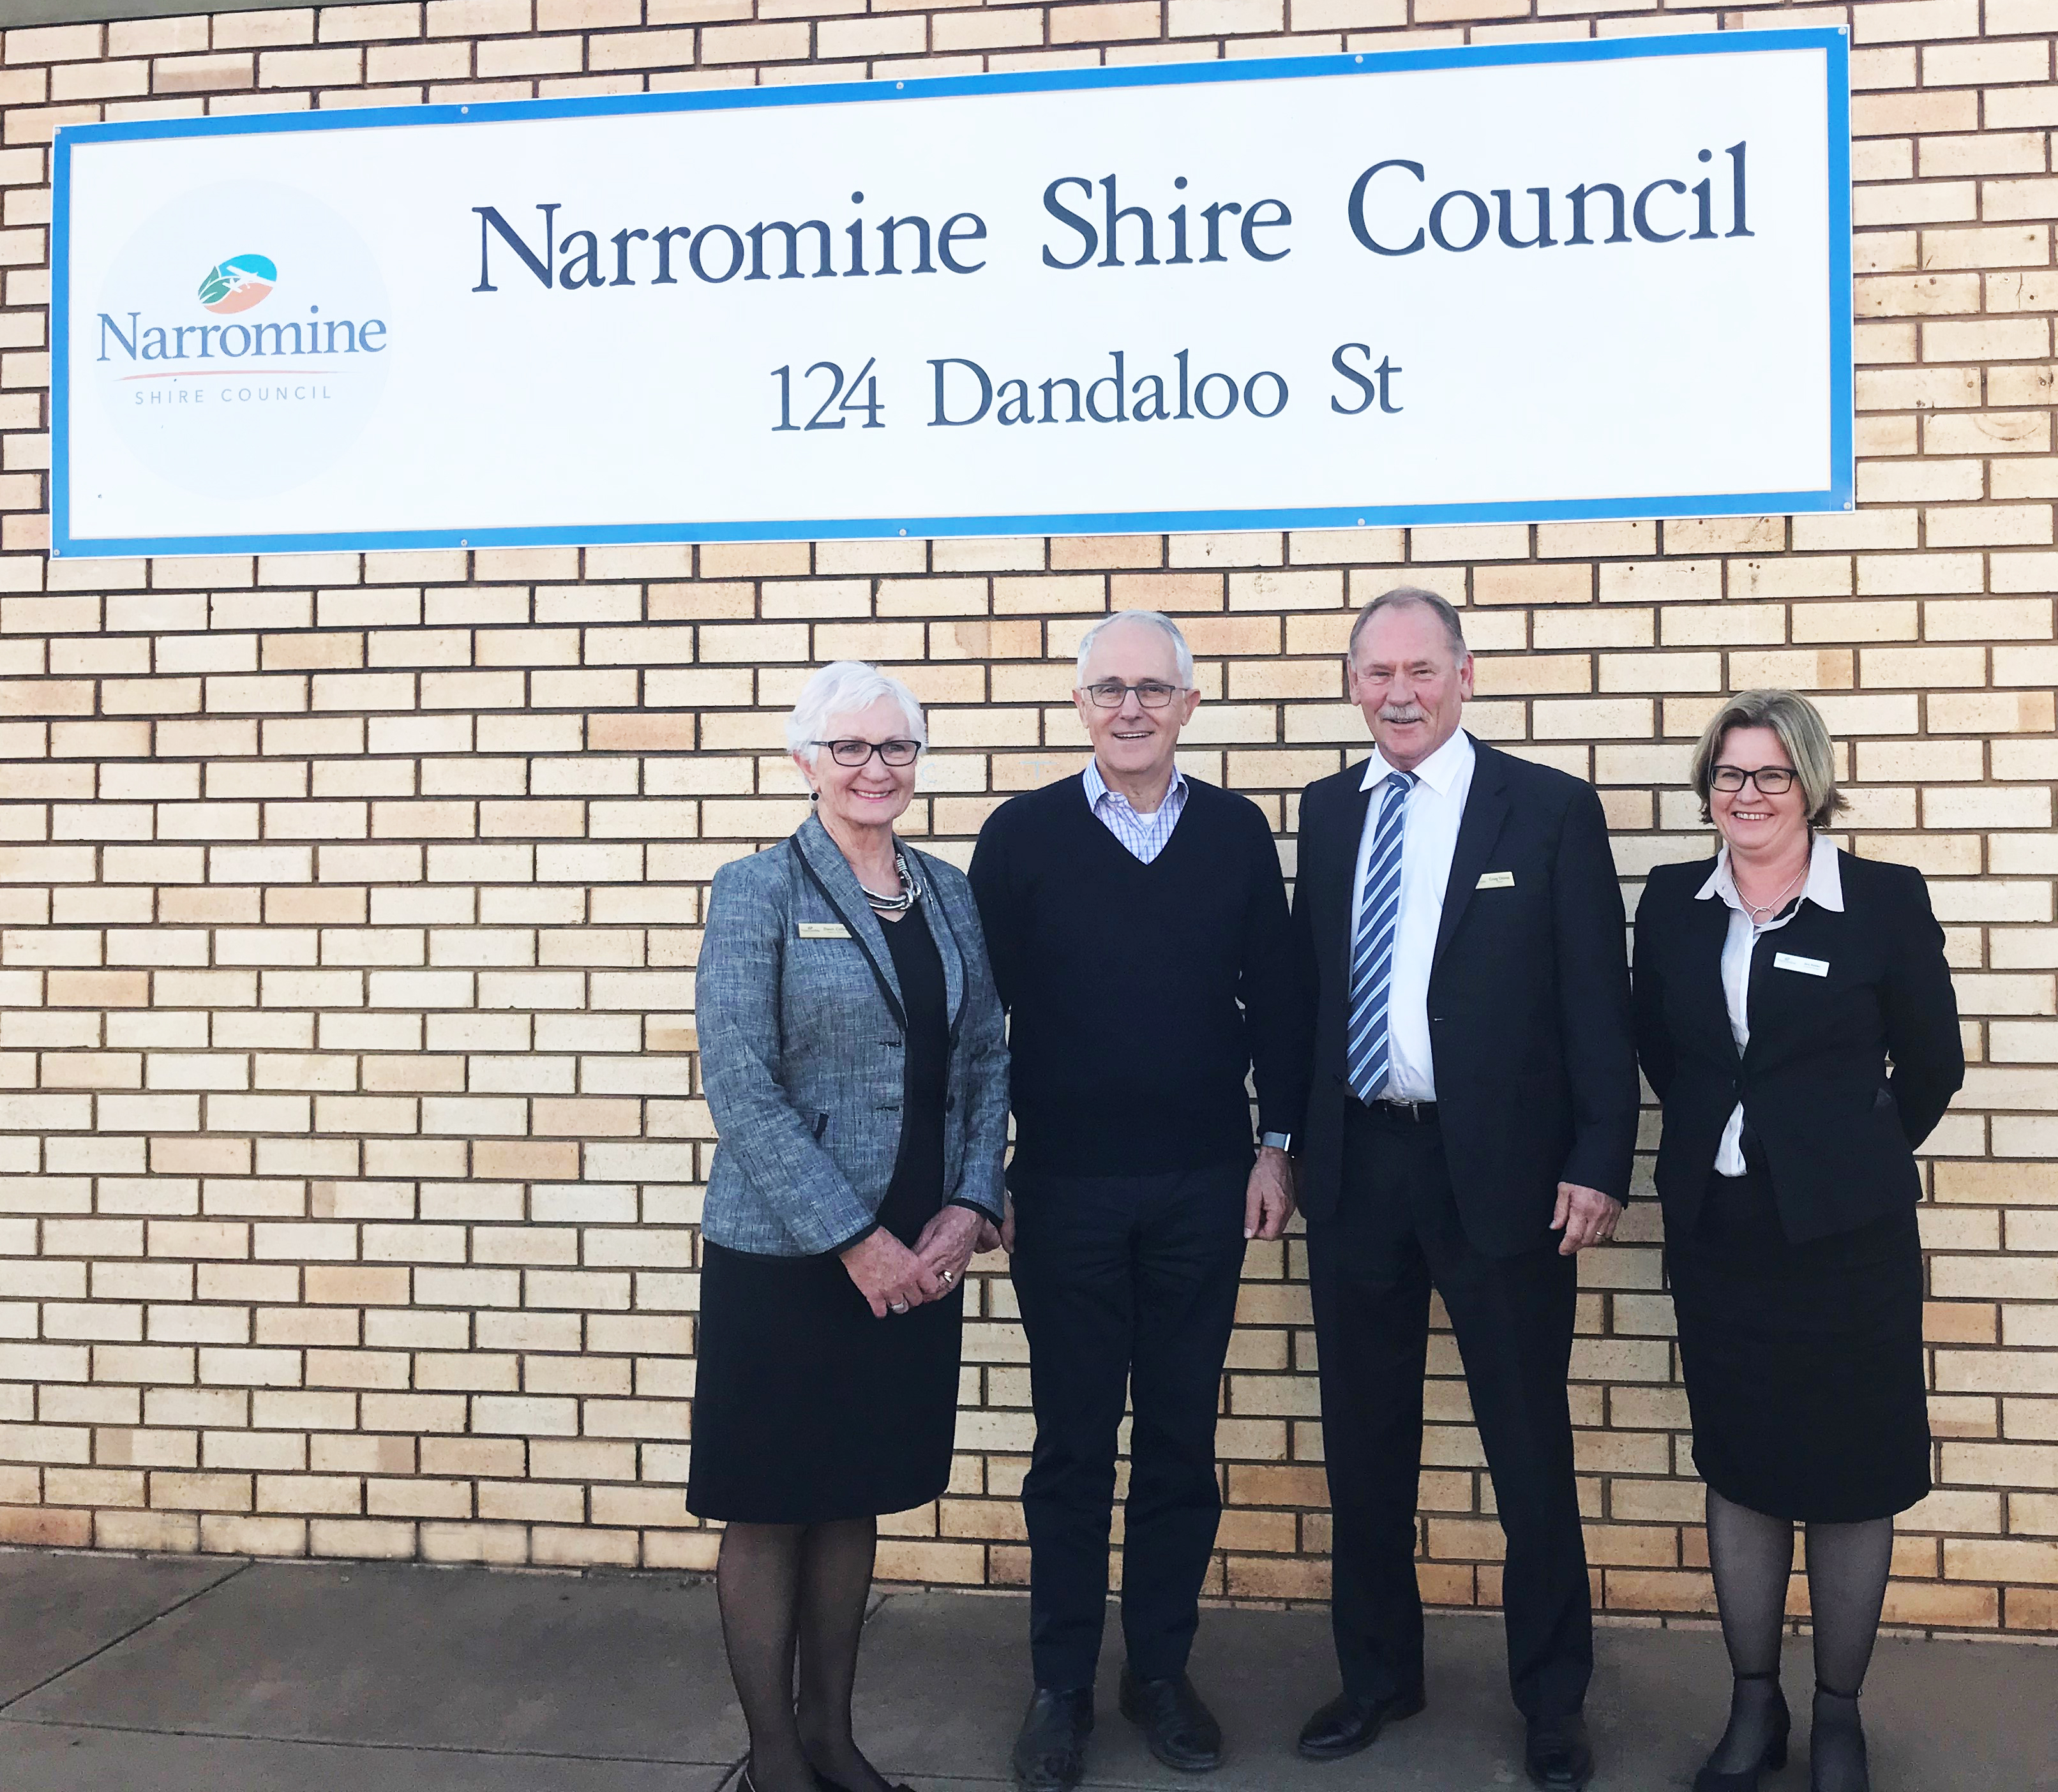 Prime Minister Malcolm Turnbull visits the Narromine Shire